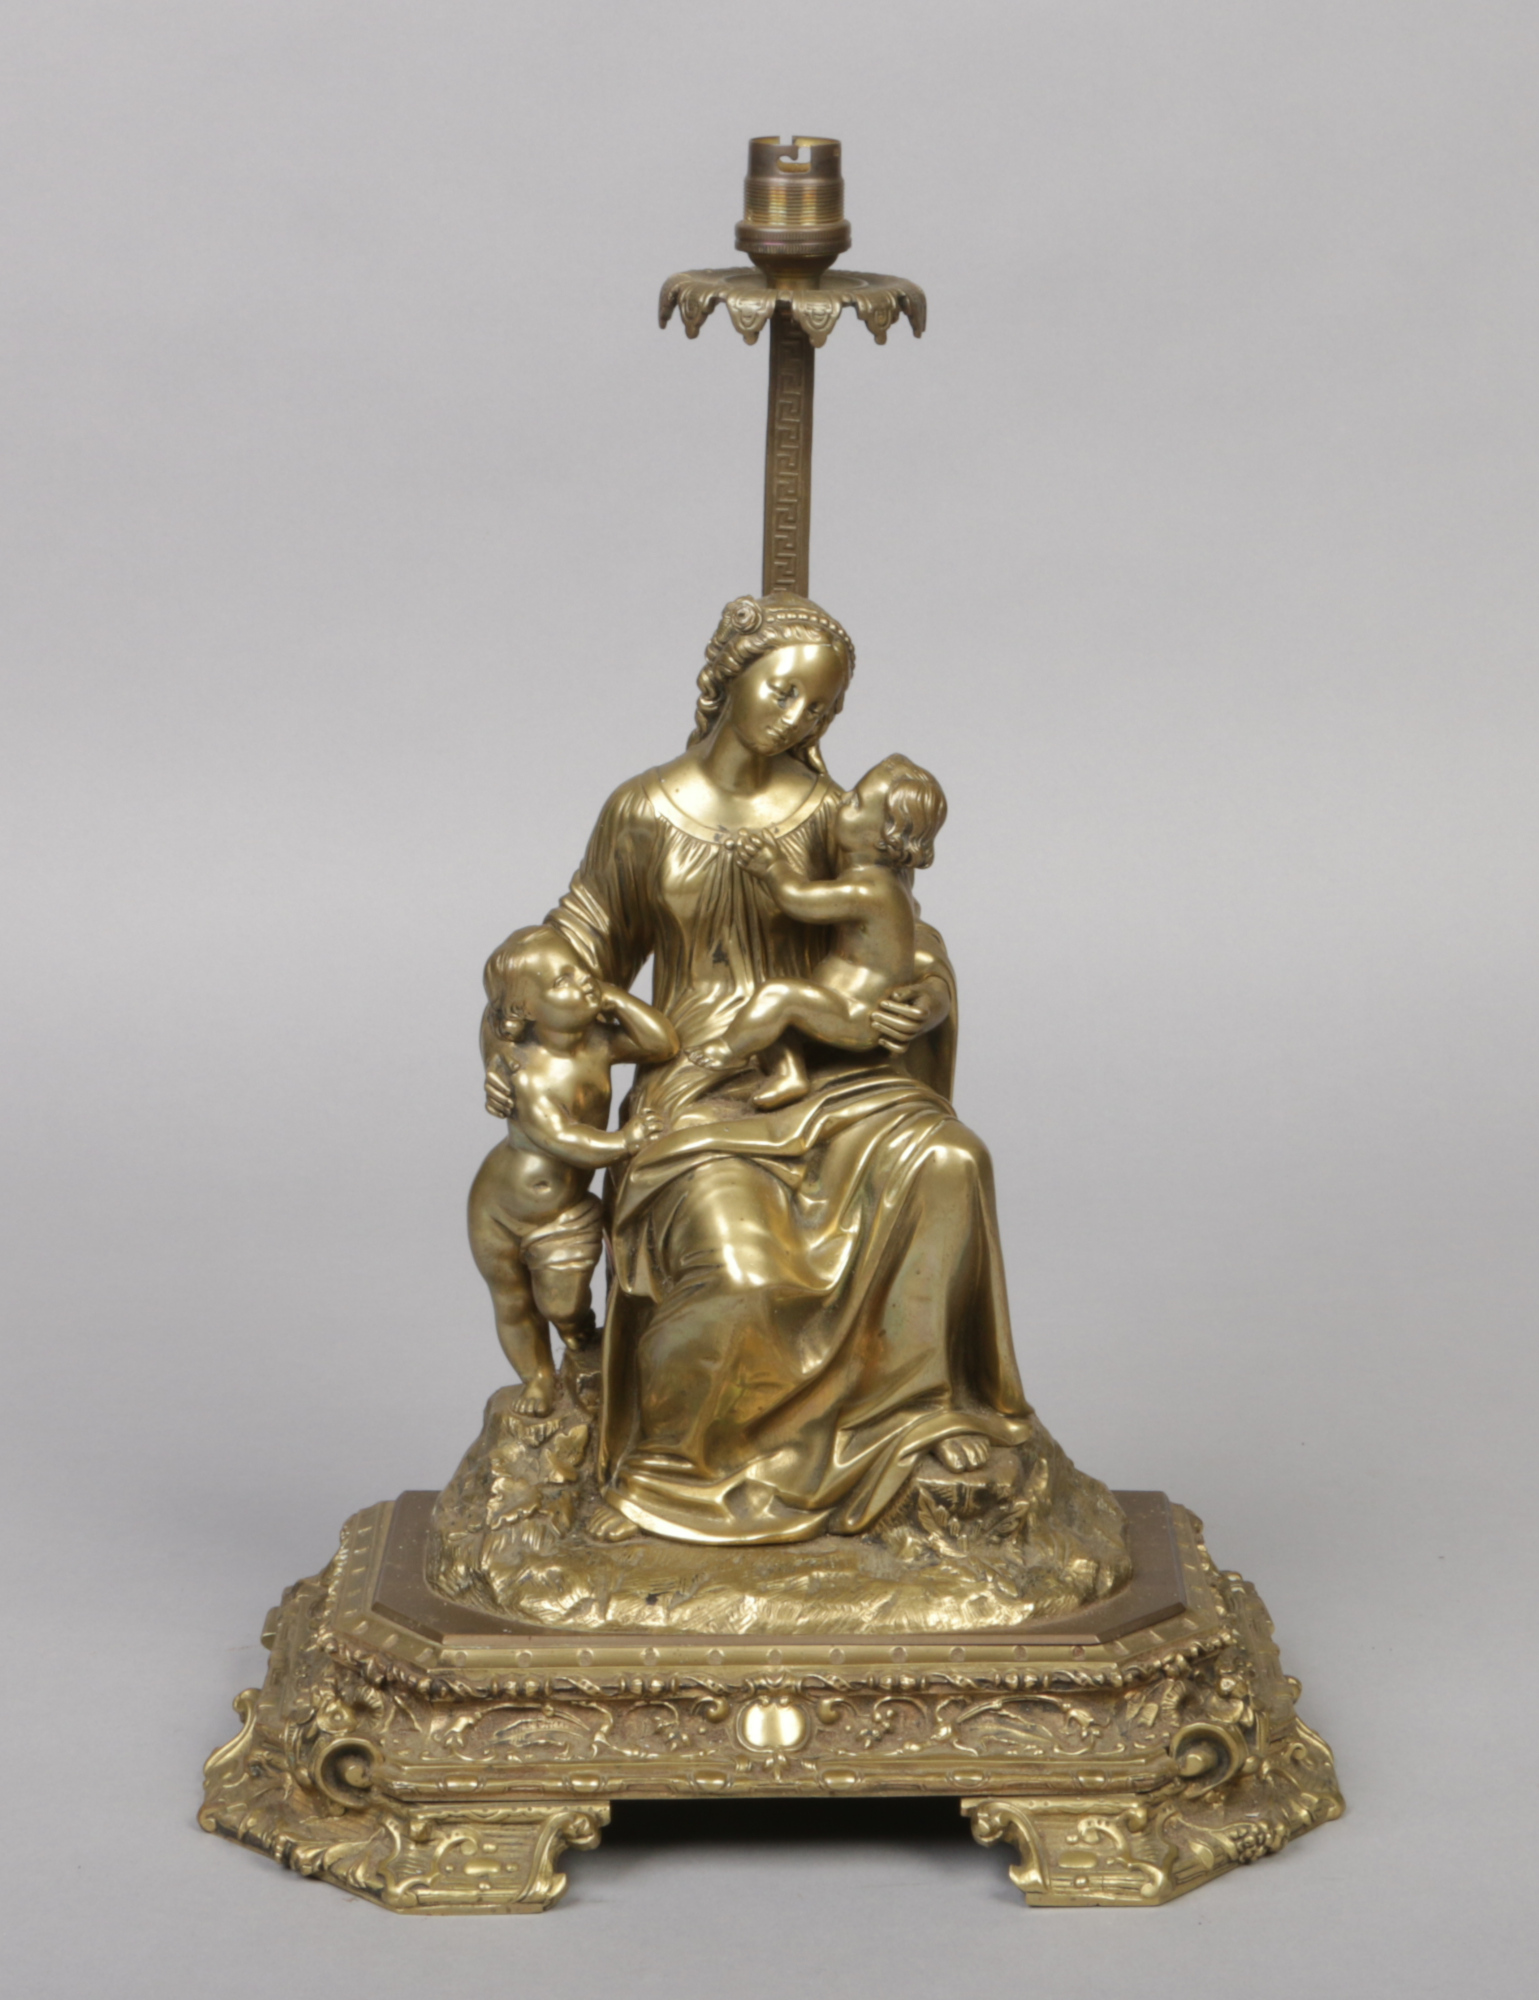 Lot 276 - A 19th century bronze figure later converted to a table lamp. Modelled as the Madonna and Child with